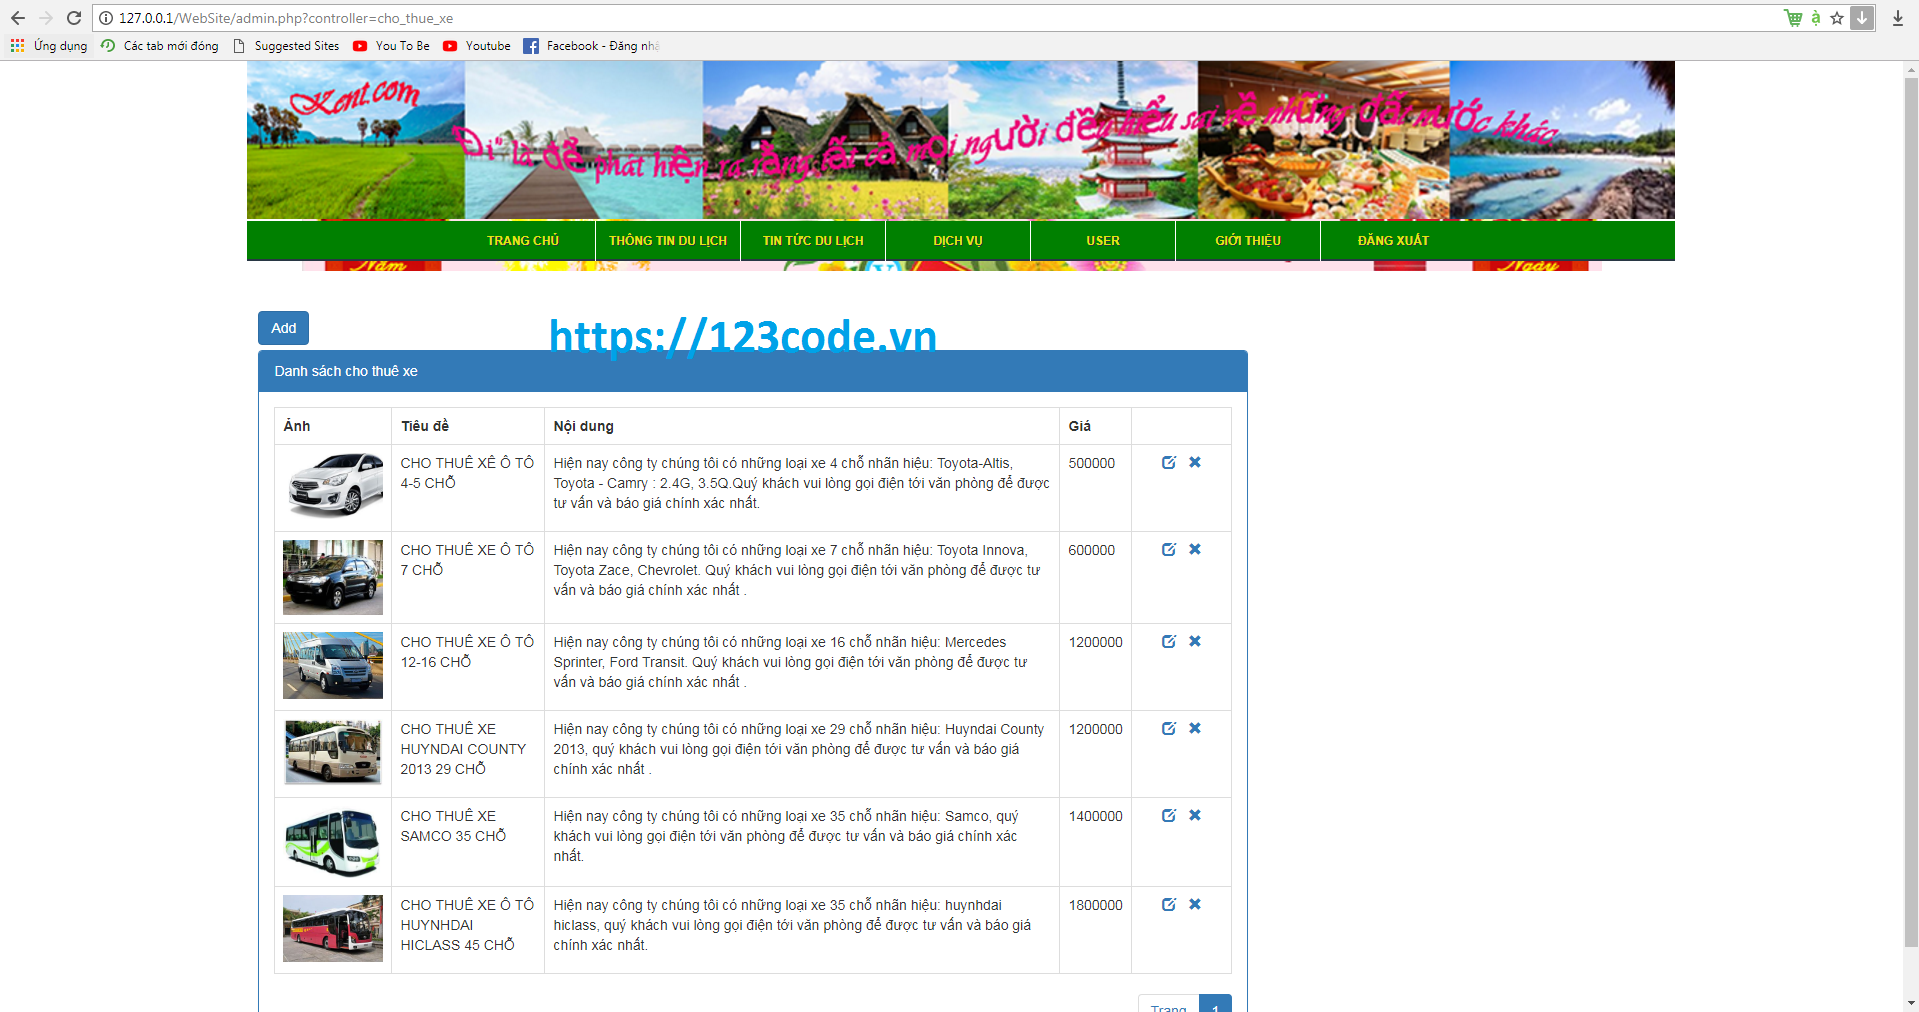 Full source code website tour du lịch php có database 123code.vn